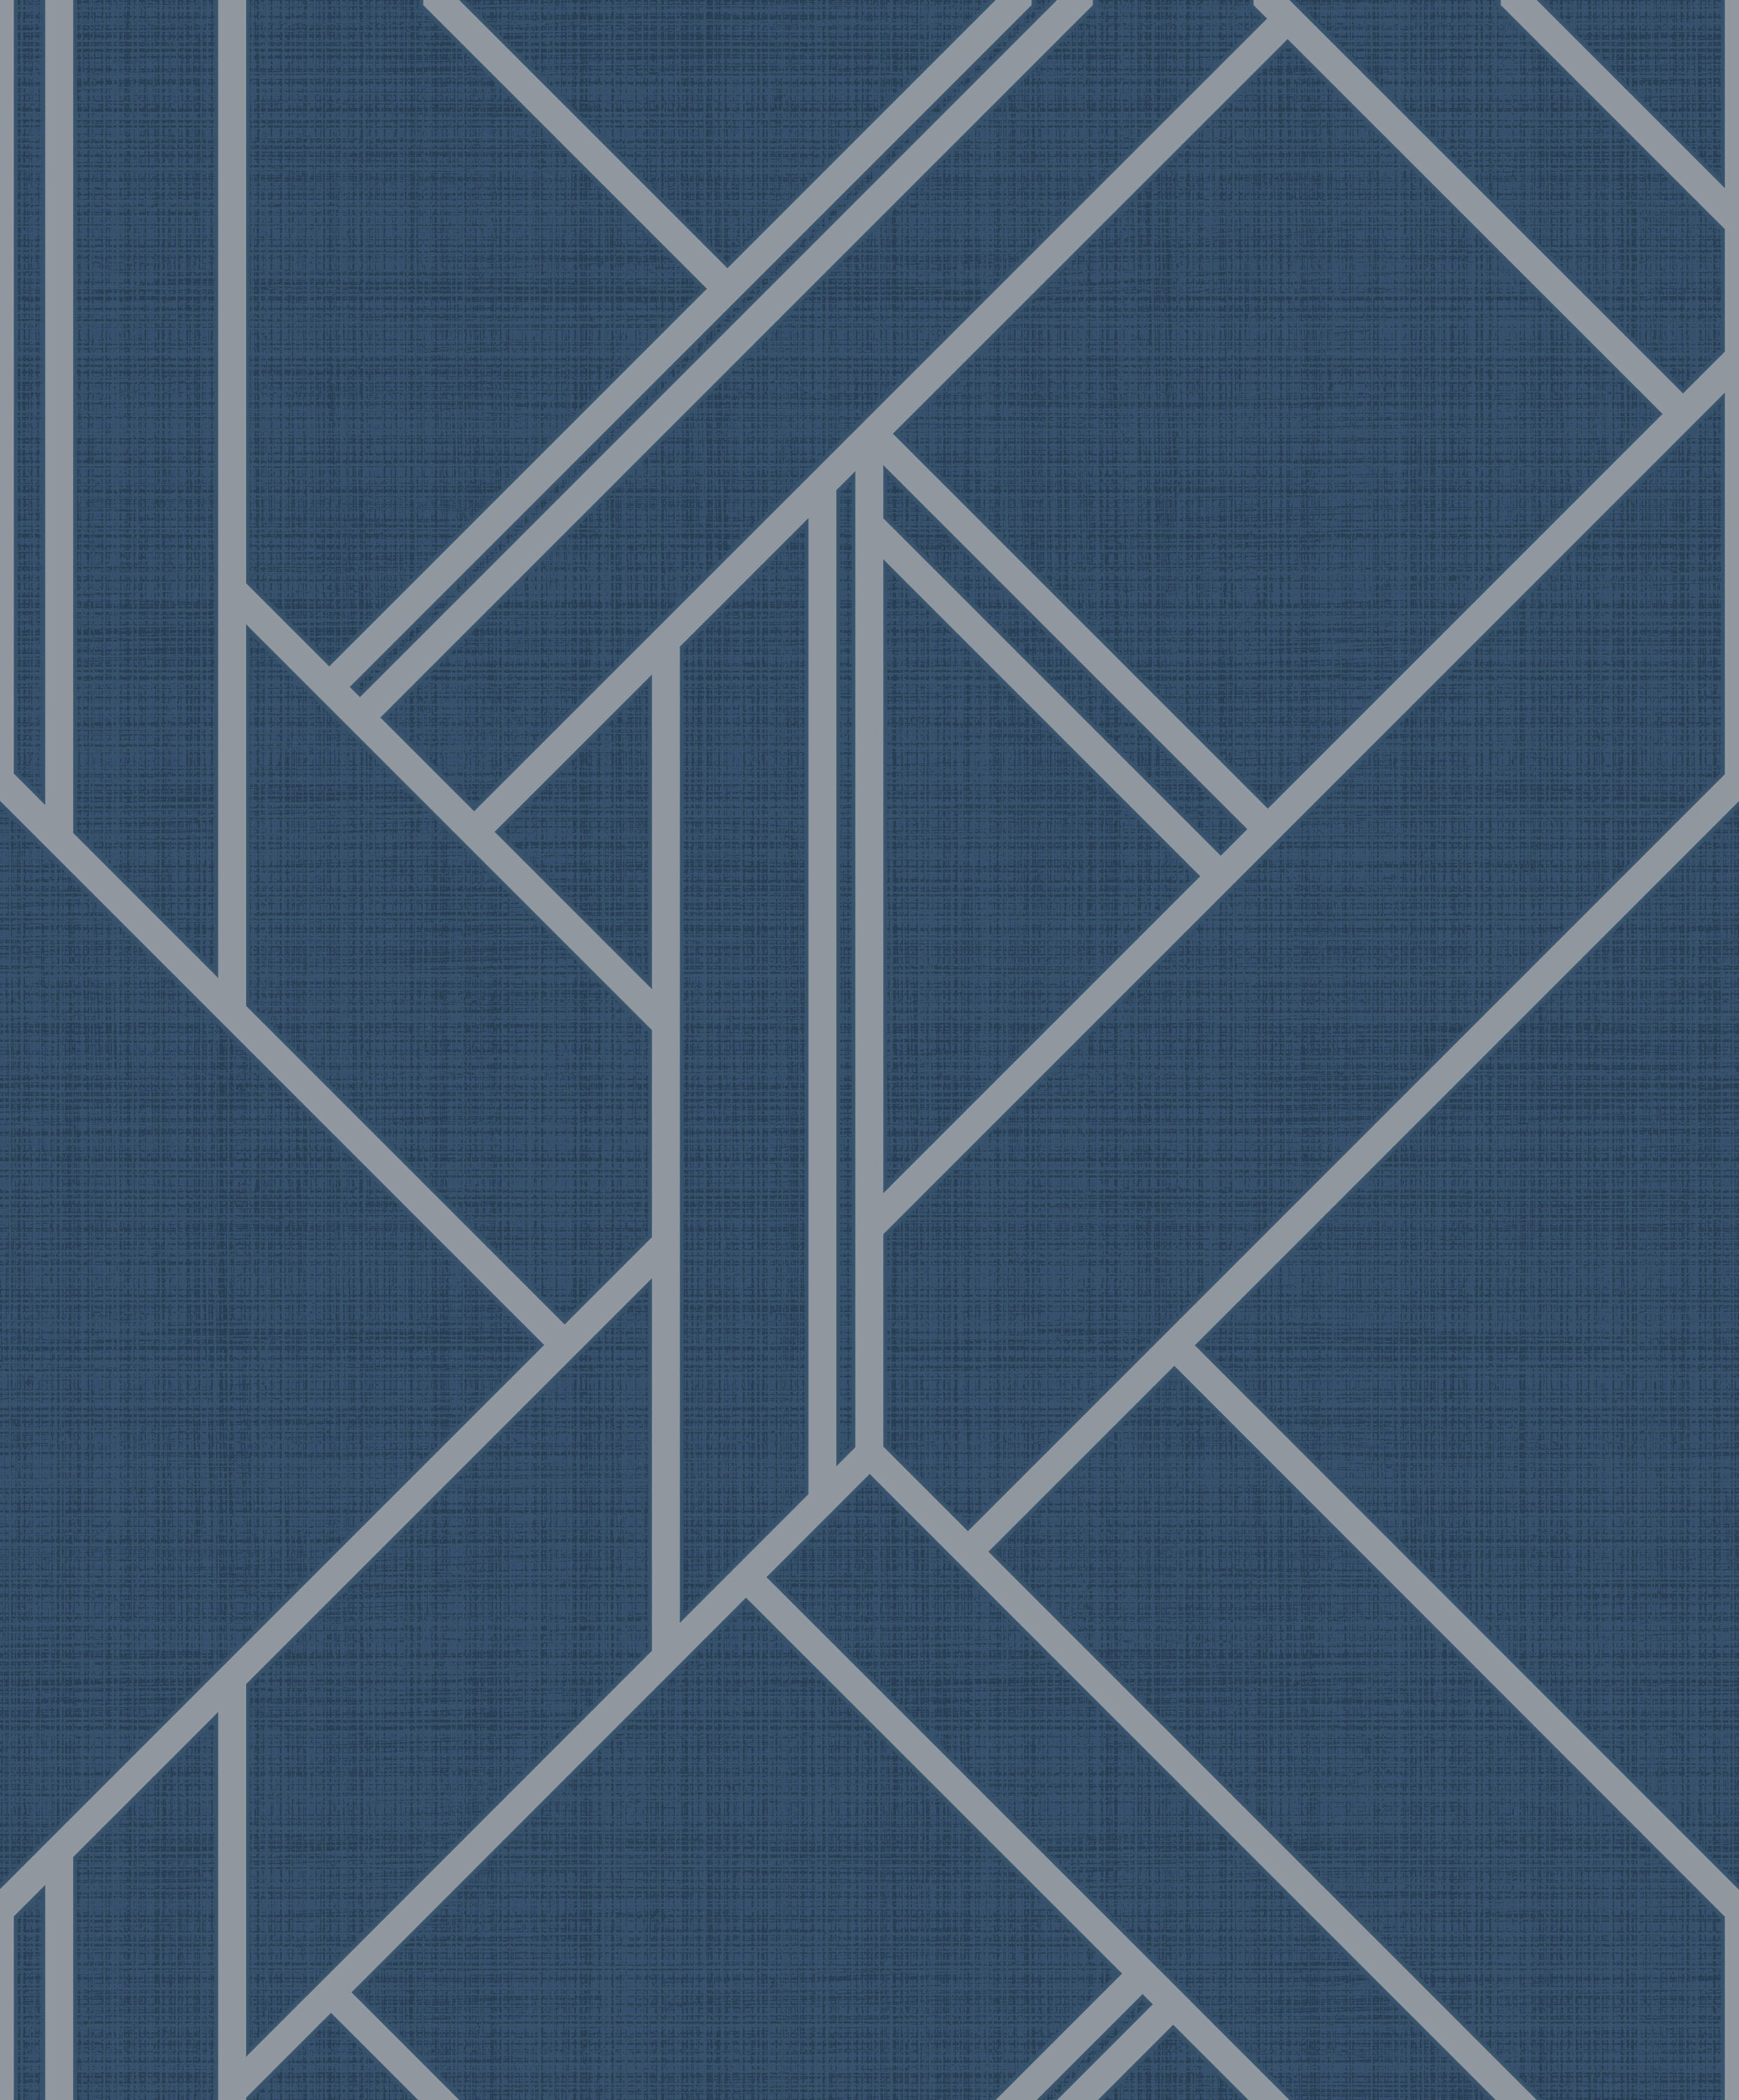 Designer Geometric WallpaperNavy Blue SilverTexture Pear Tree UK50502